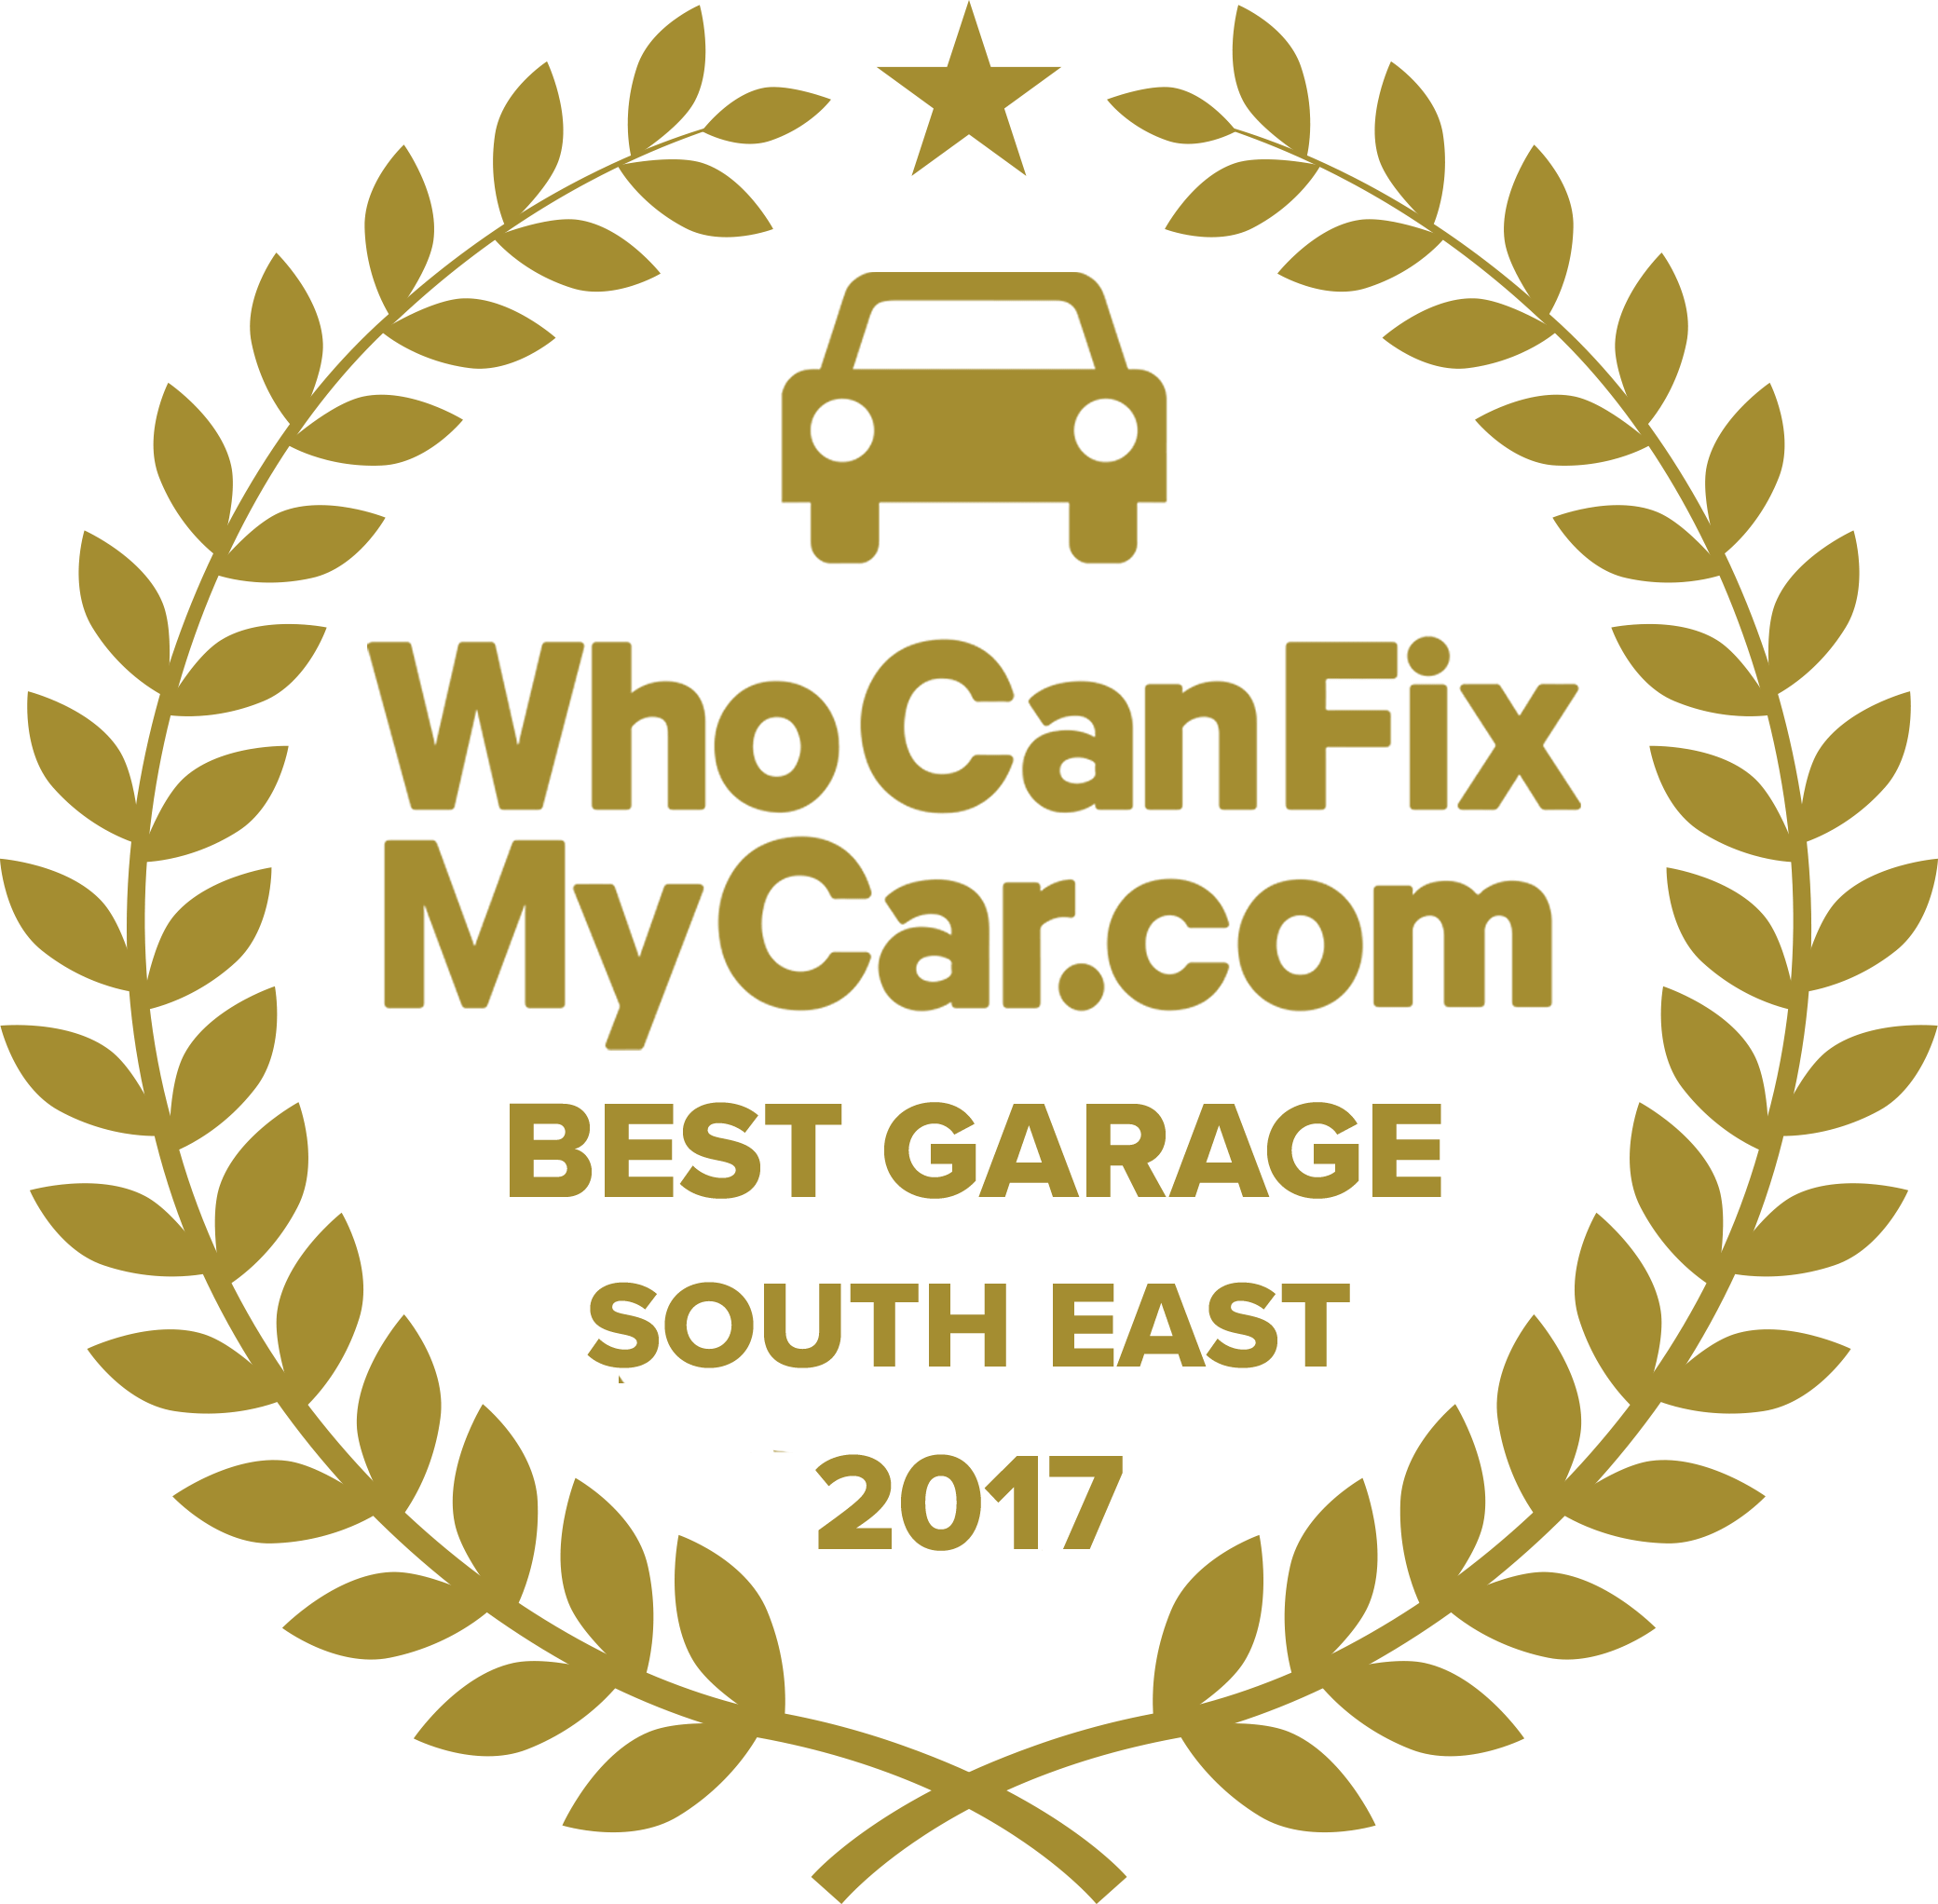 Best Garage 2017 - South East